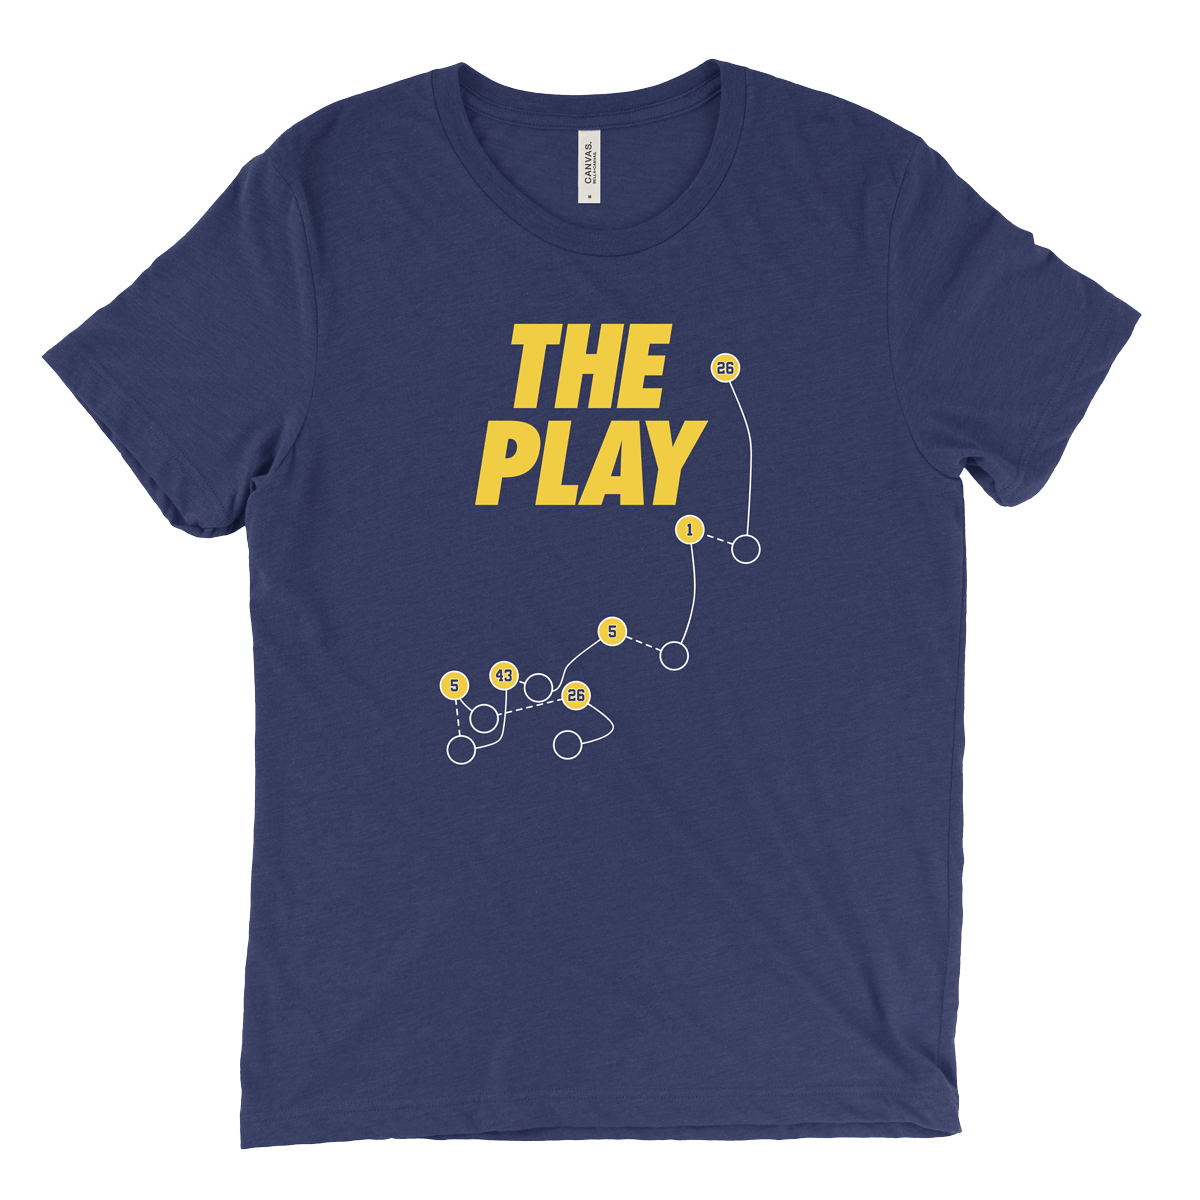 The Play Shirt